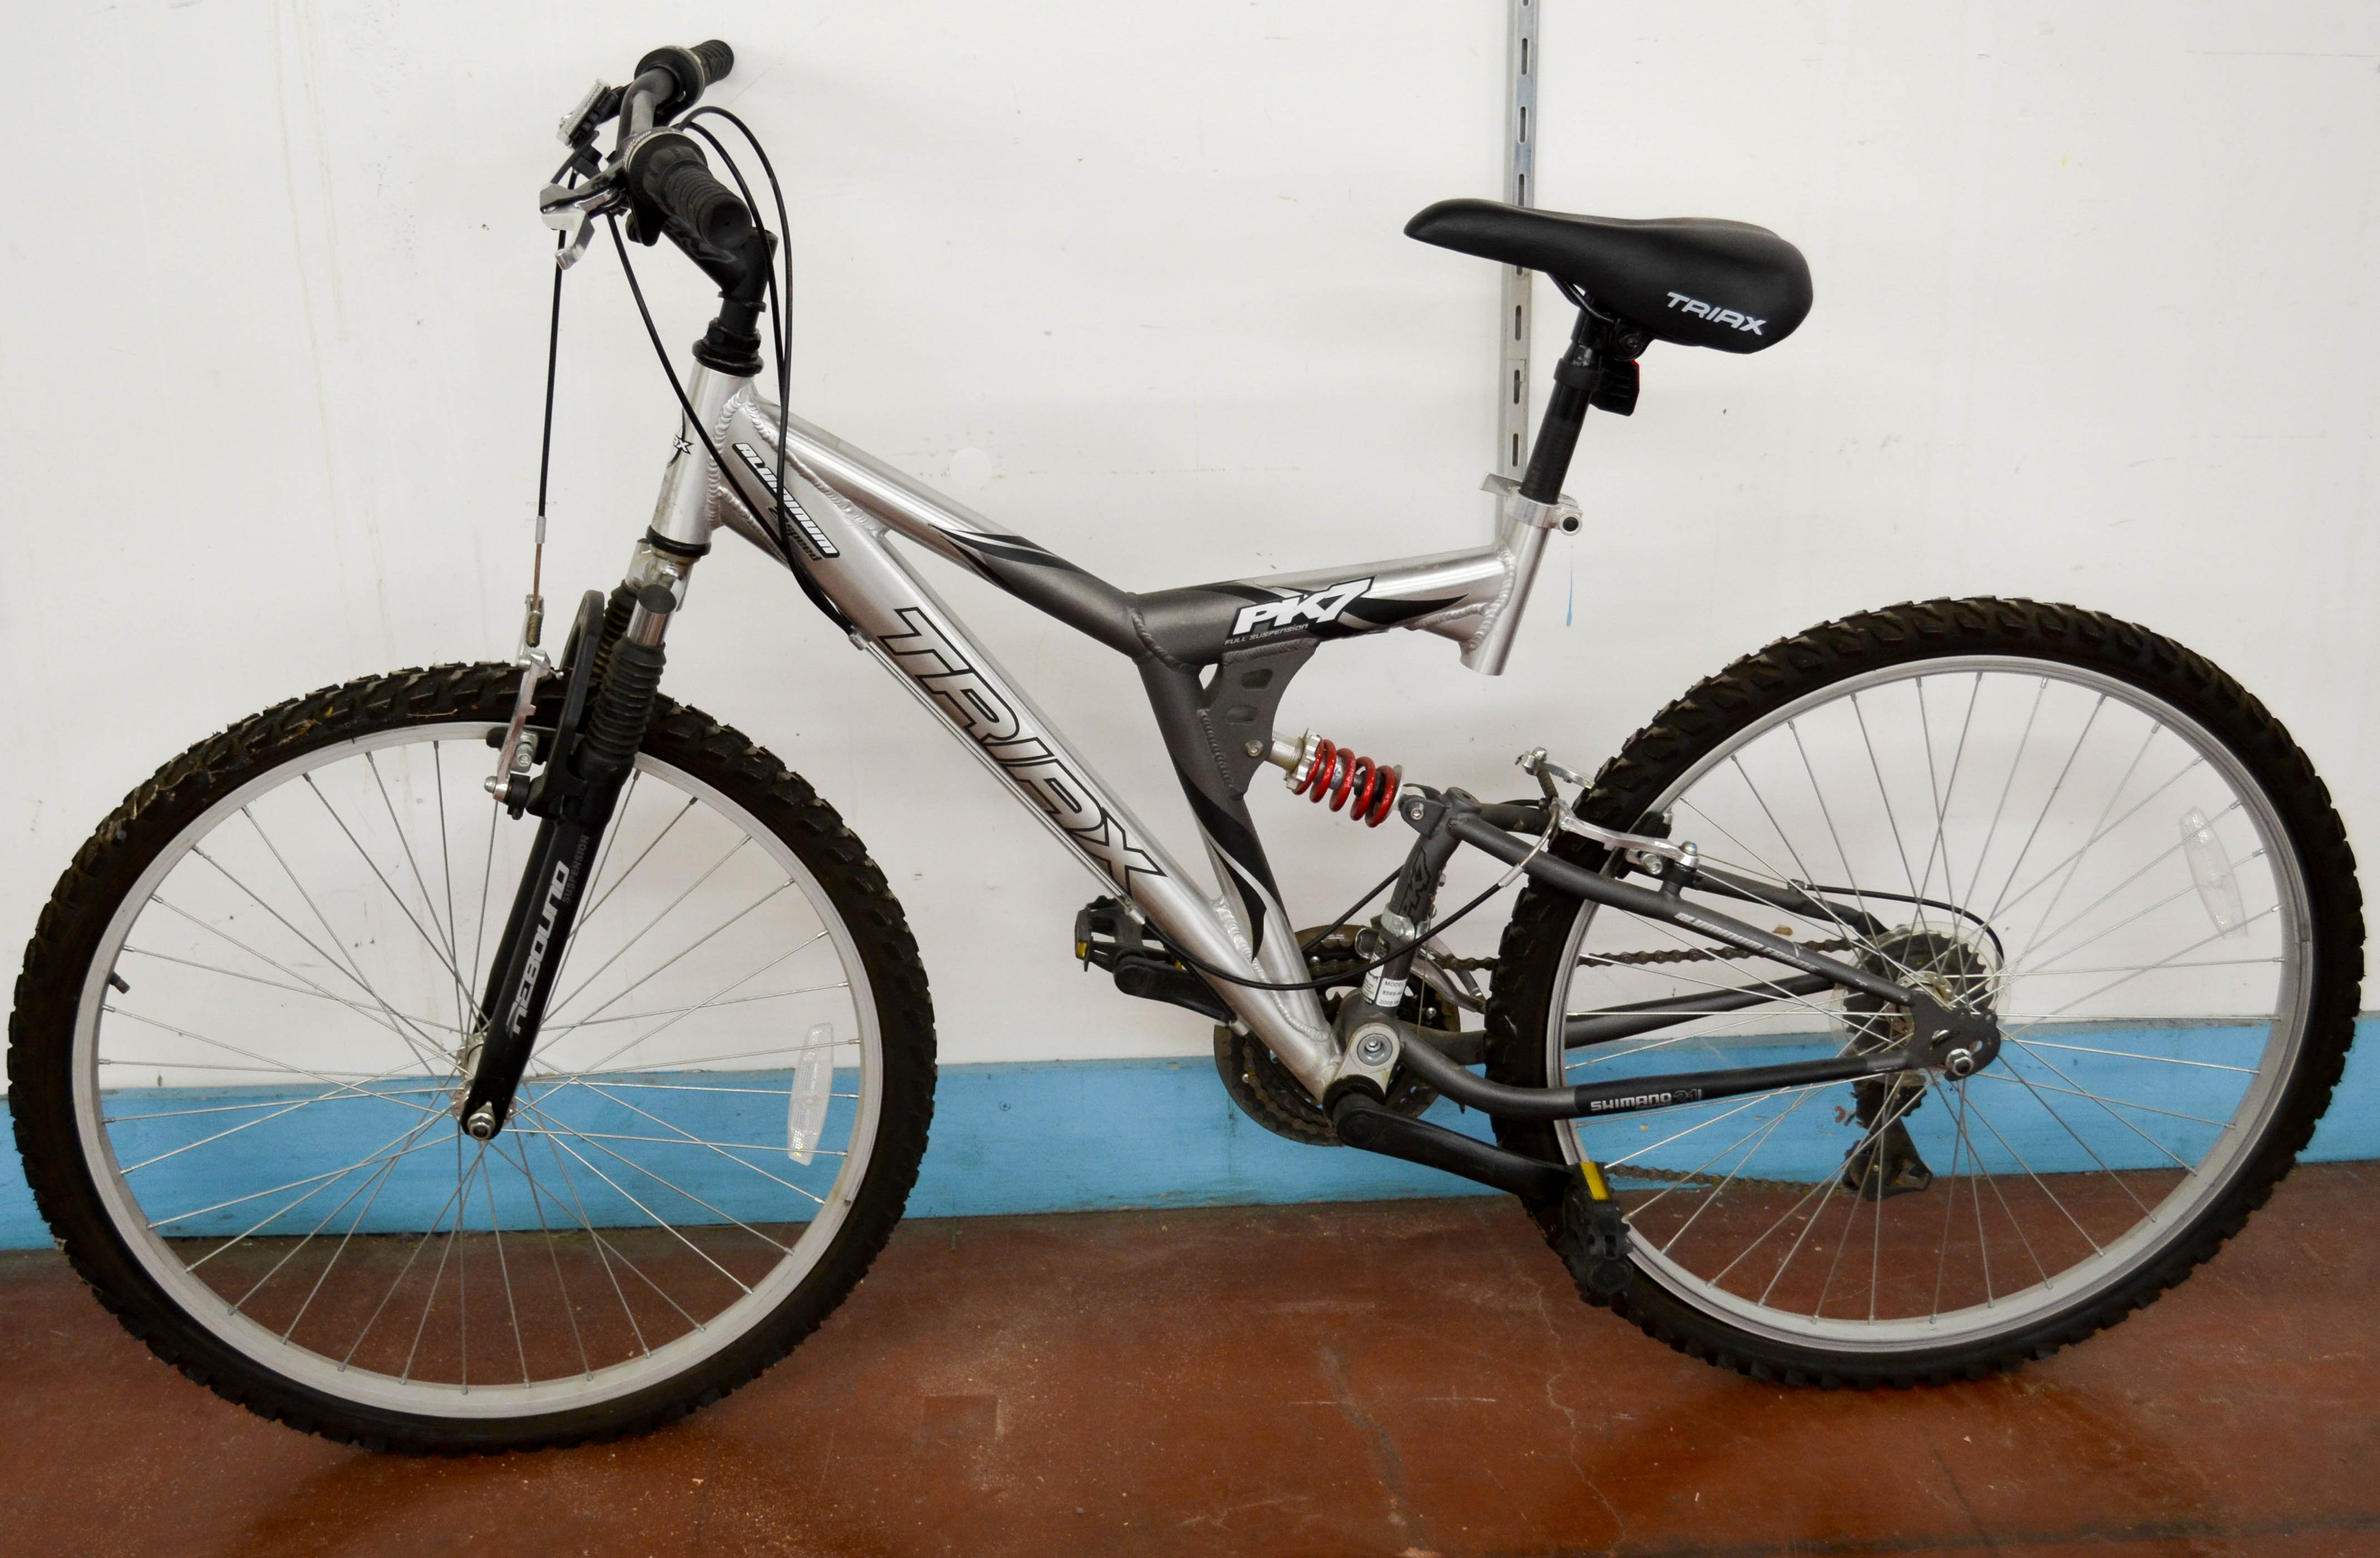 99 Triax BK7 21inch Bike